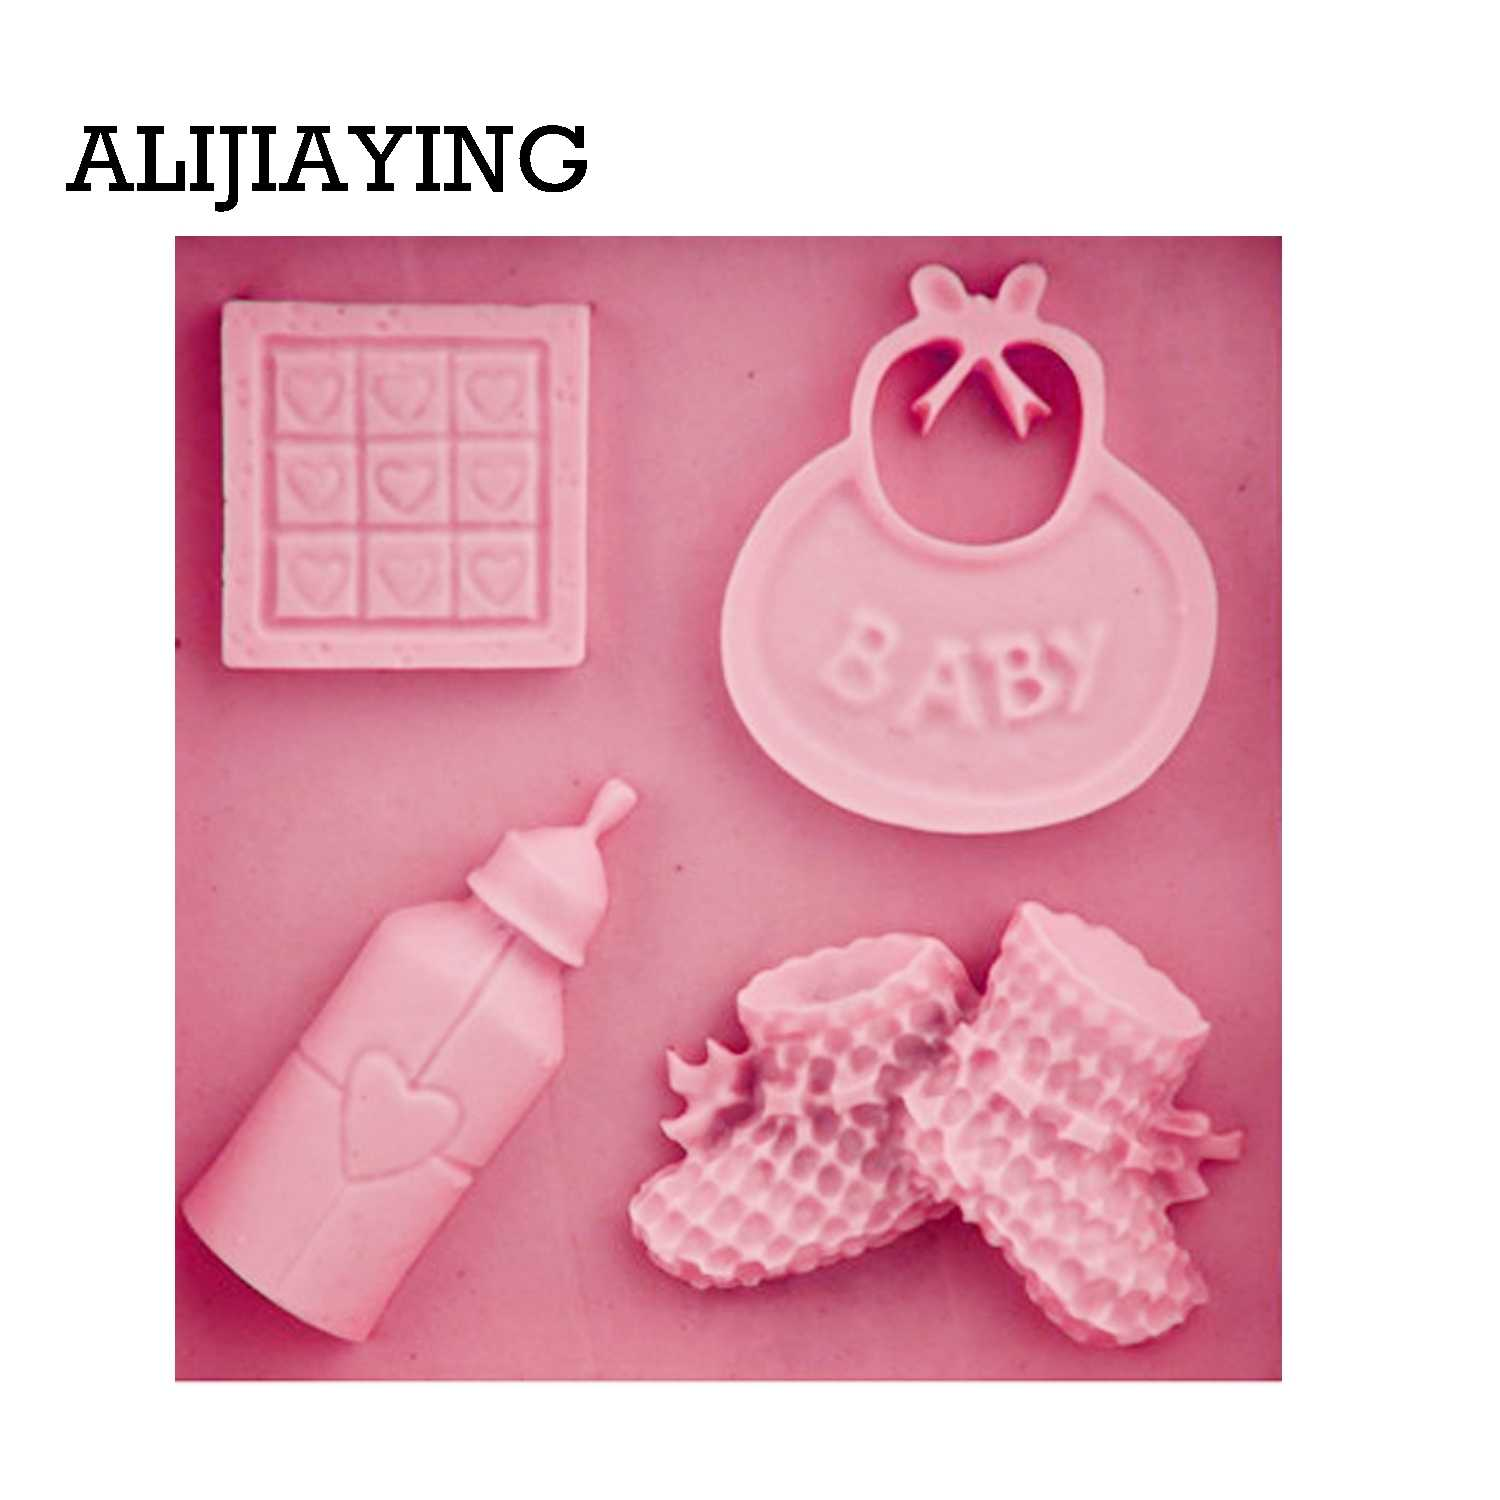 92a1f395c6 ... M0254 1Pcs Baby shoes Silicone mold Fondant Mould saliva bottle  Chocolate Molds DIY cake border Decorating ...